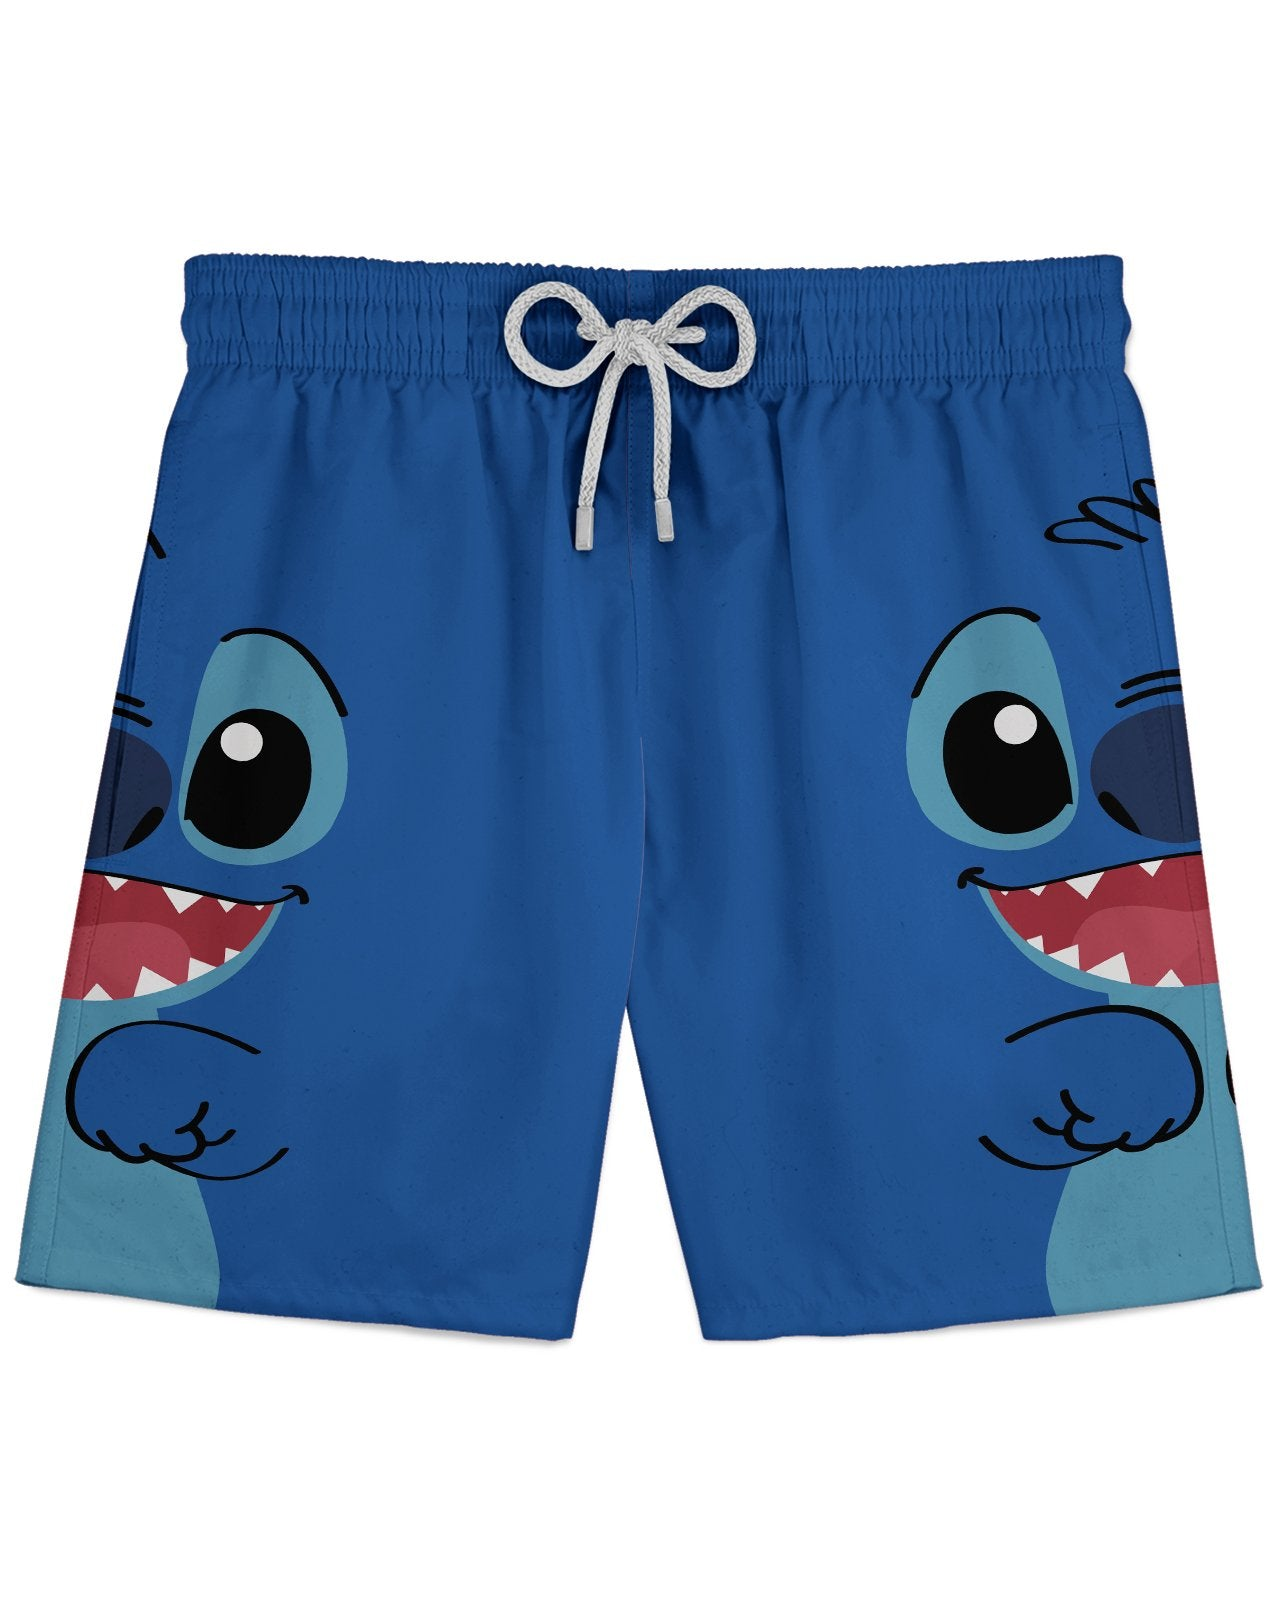 Stitch Athletic Shorts